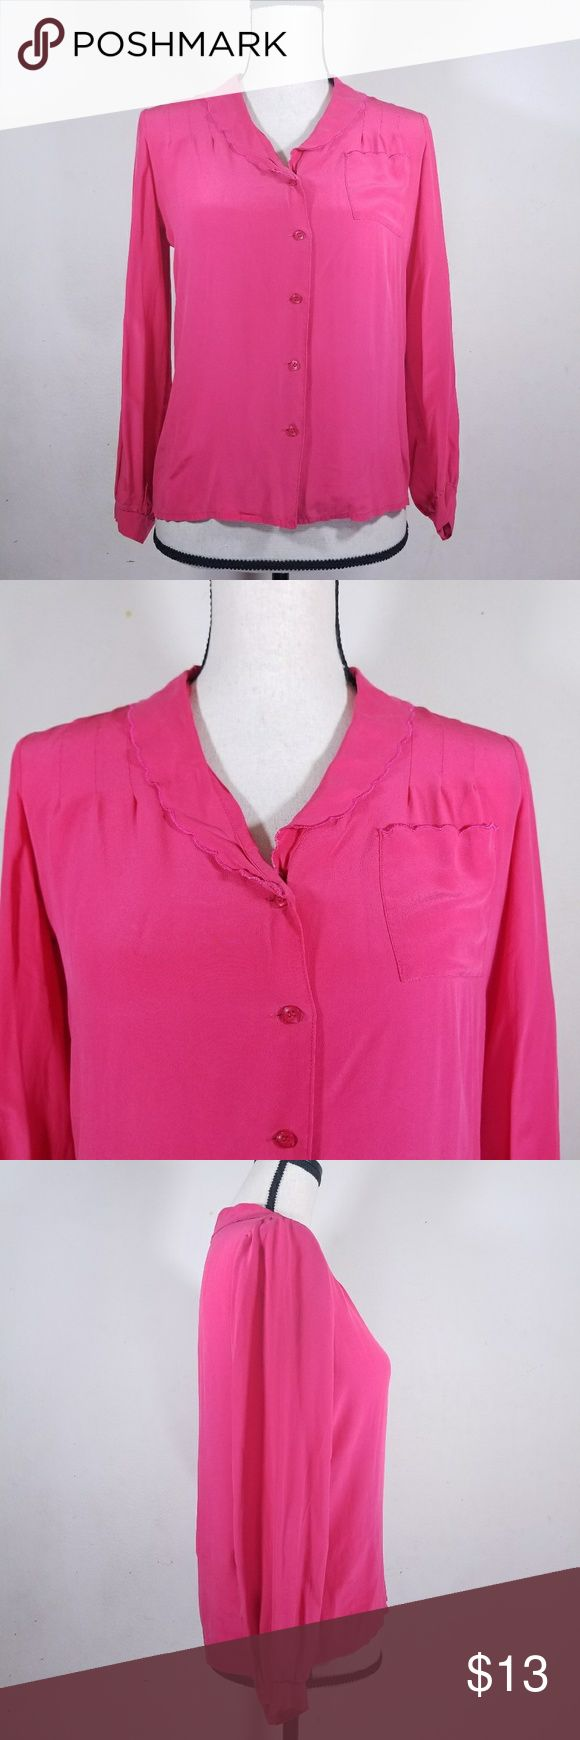 """Saint Pierre Coral Pink Silk Button Down Blouse Bright coral/pink silk button down top. Pleated shoukders and slightly ruffled collar. Some discoloration in the underarm area.  Underarm to underarm: 18.5"""" Sleeve length: 20.75"""" Total length: 23.25""""     SC Saint Pierre Tops"""